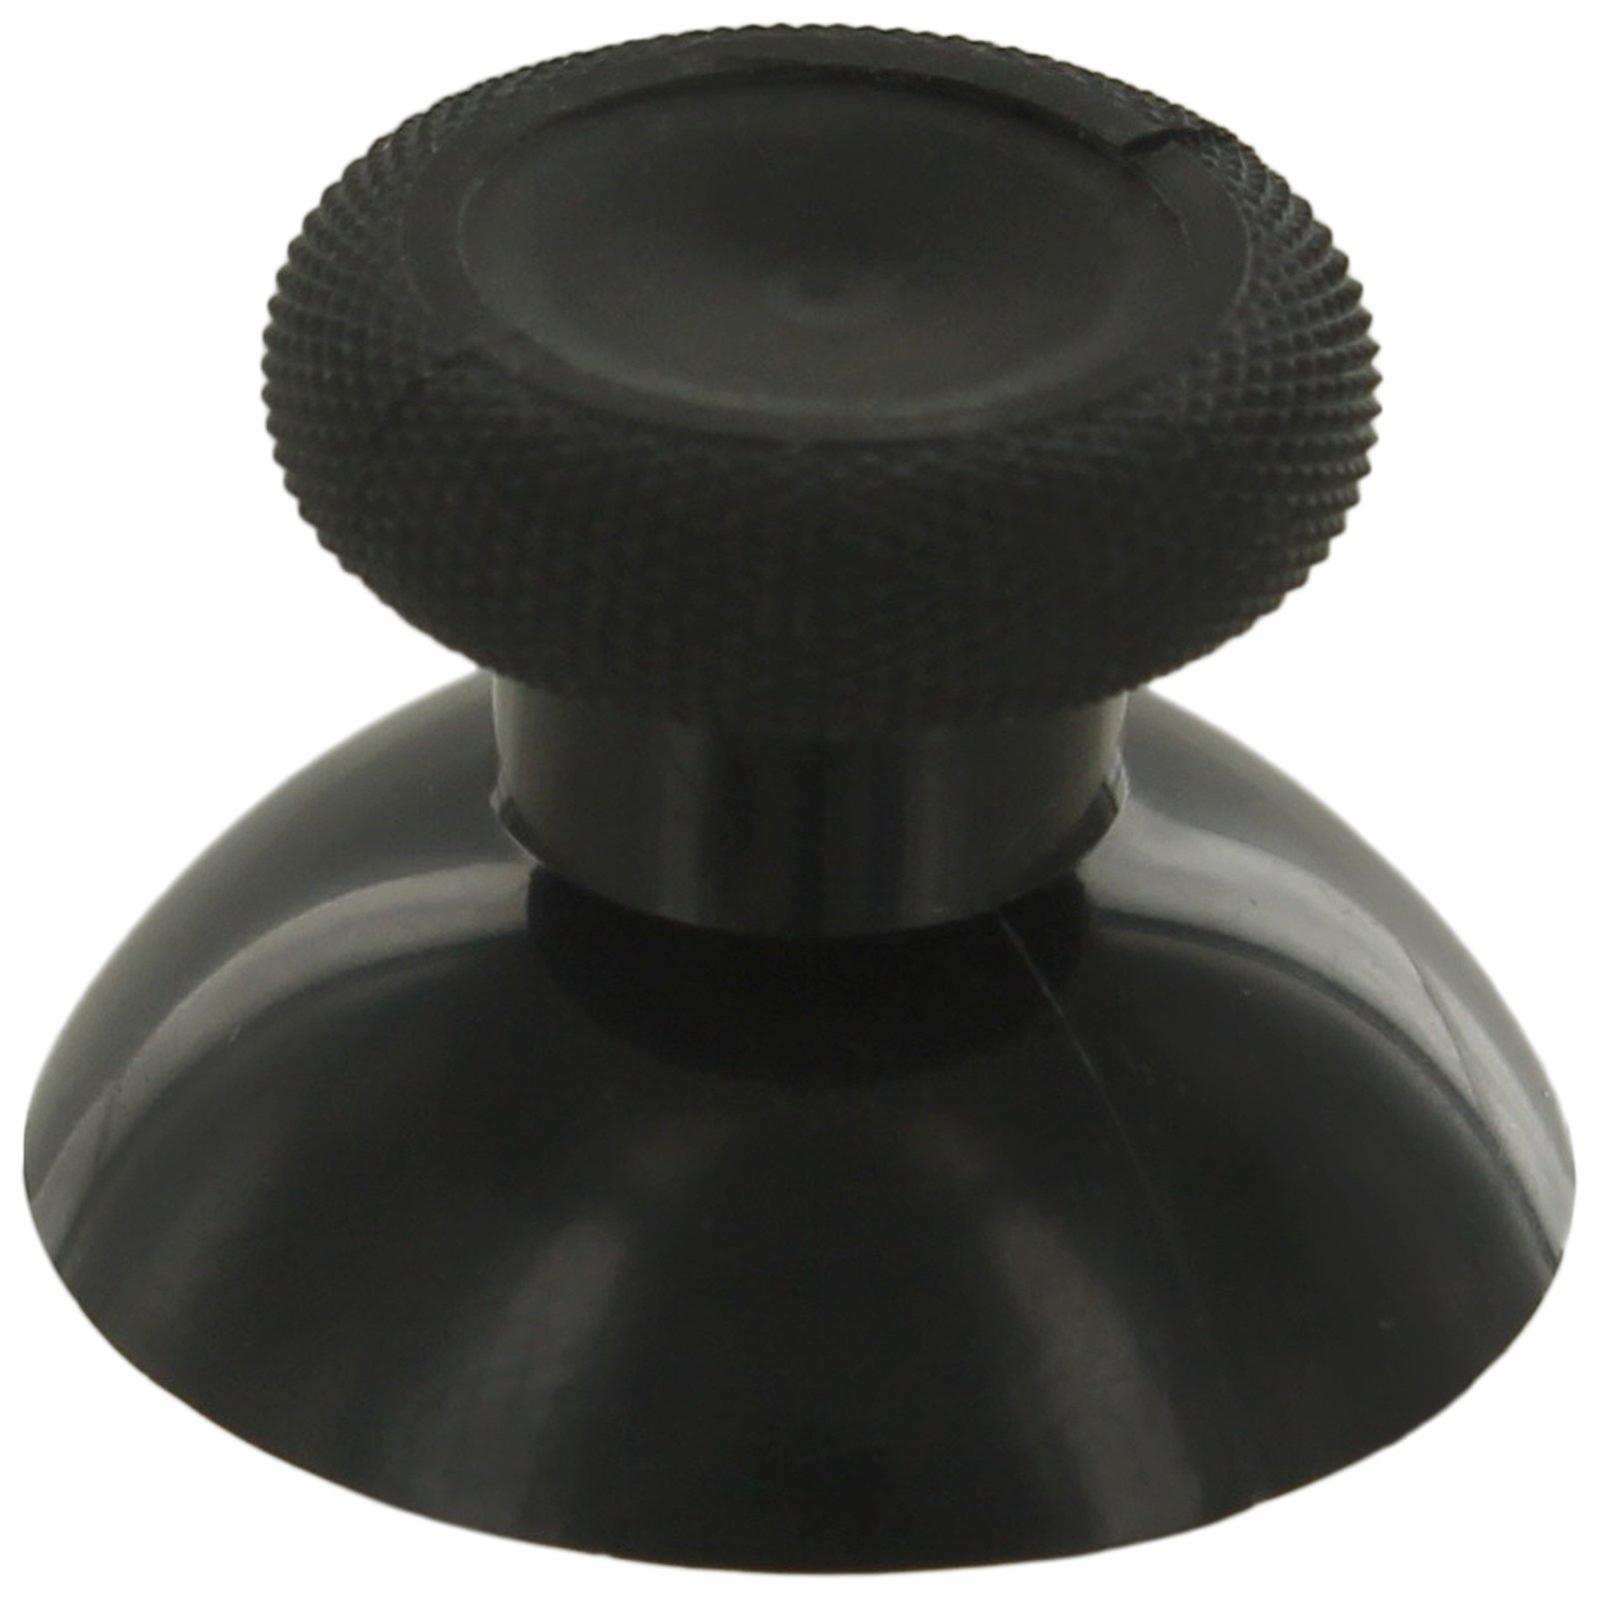 Zedlabz replacement oem concave analog thumbsticks for microsoft xbox one controller - 2 pack black